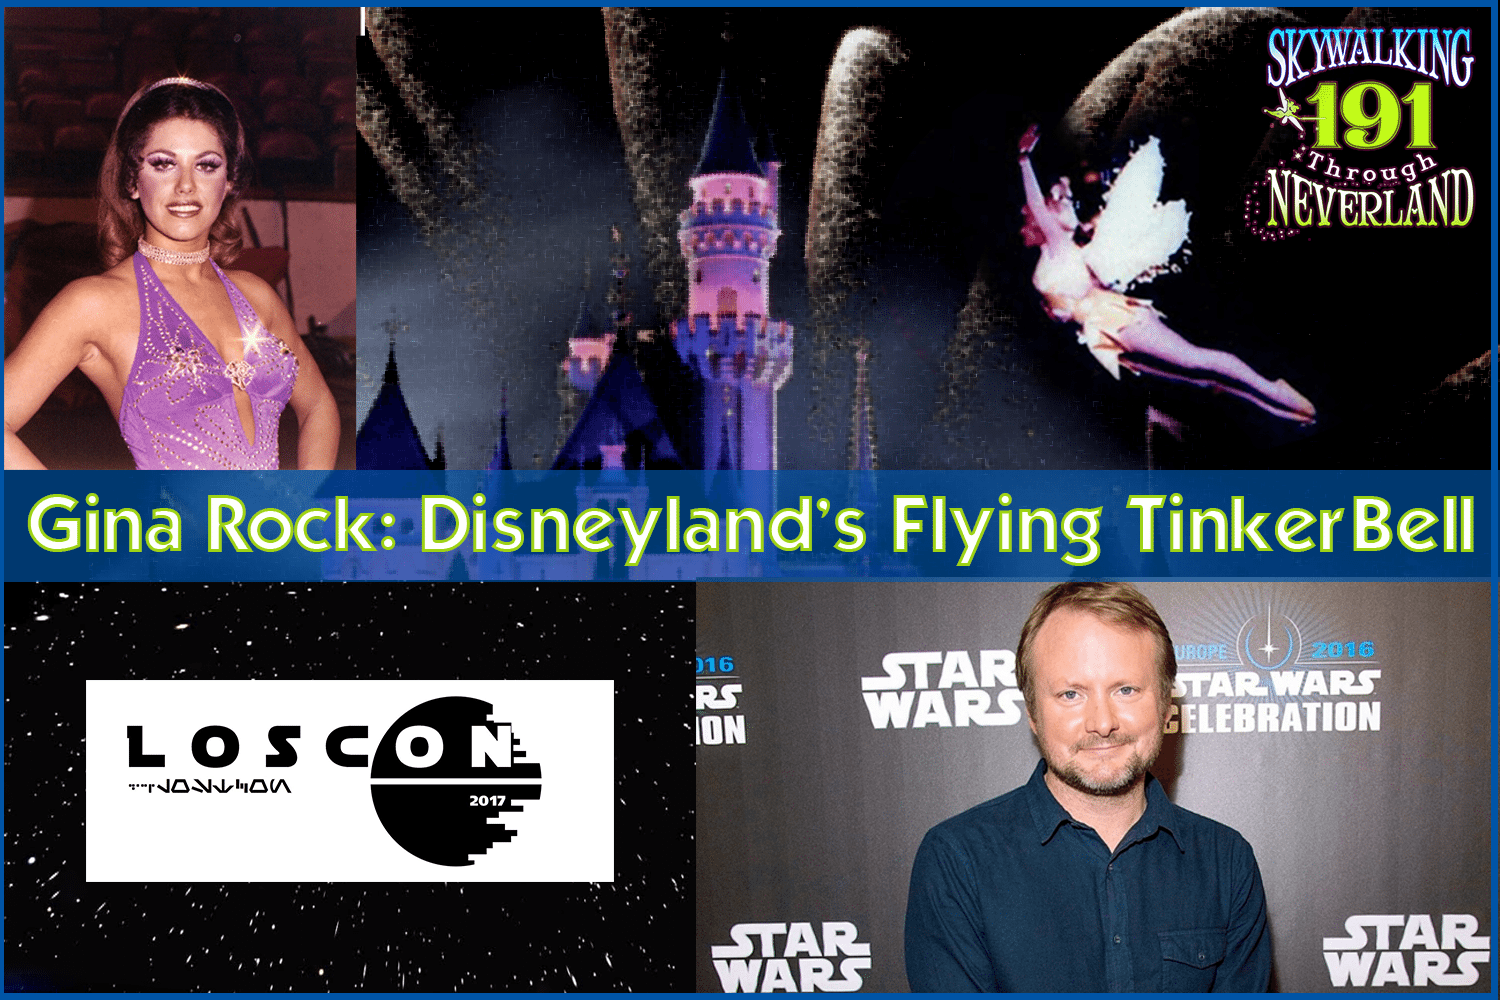 Skywalking Through Neverland #191: Gina Rock, Disneyland's Flying Tinker Bell